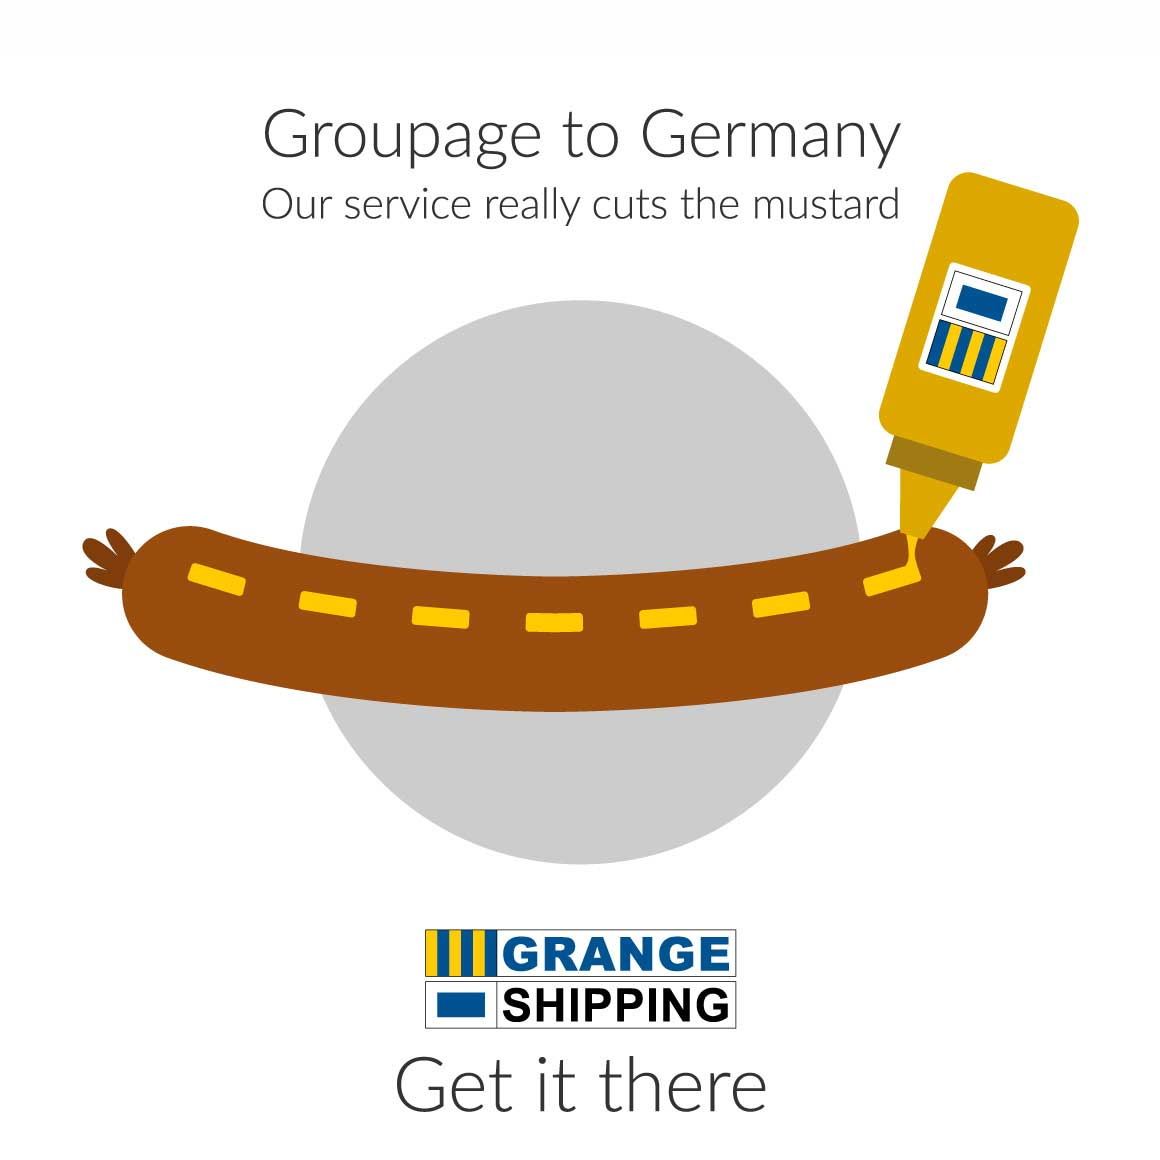 GroupagetoGermany